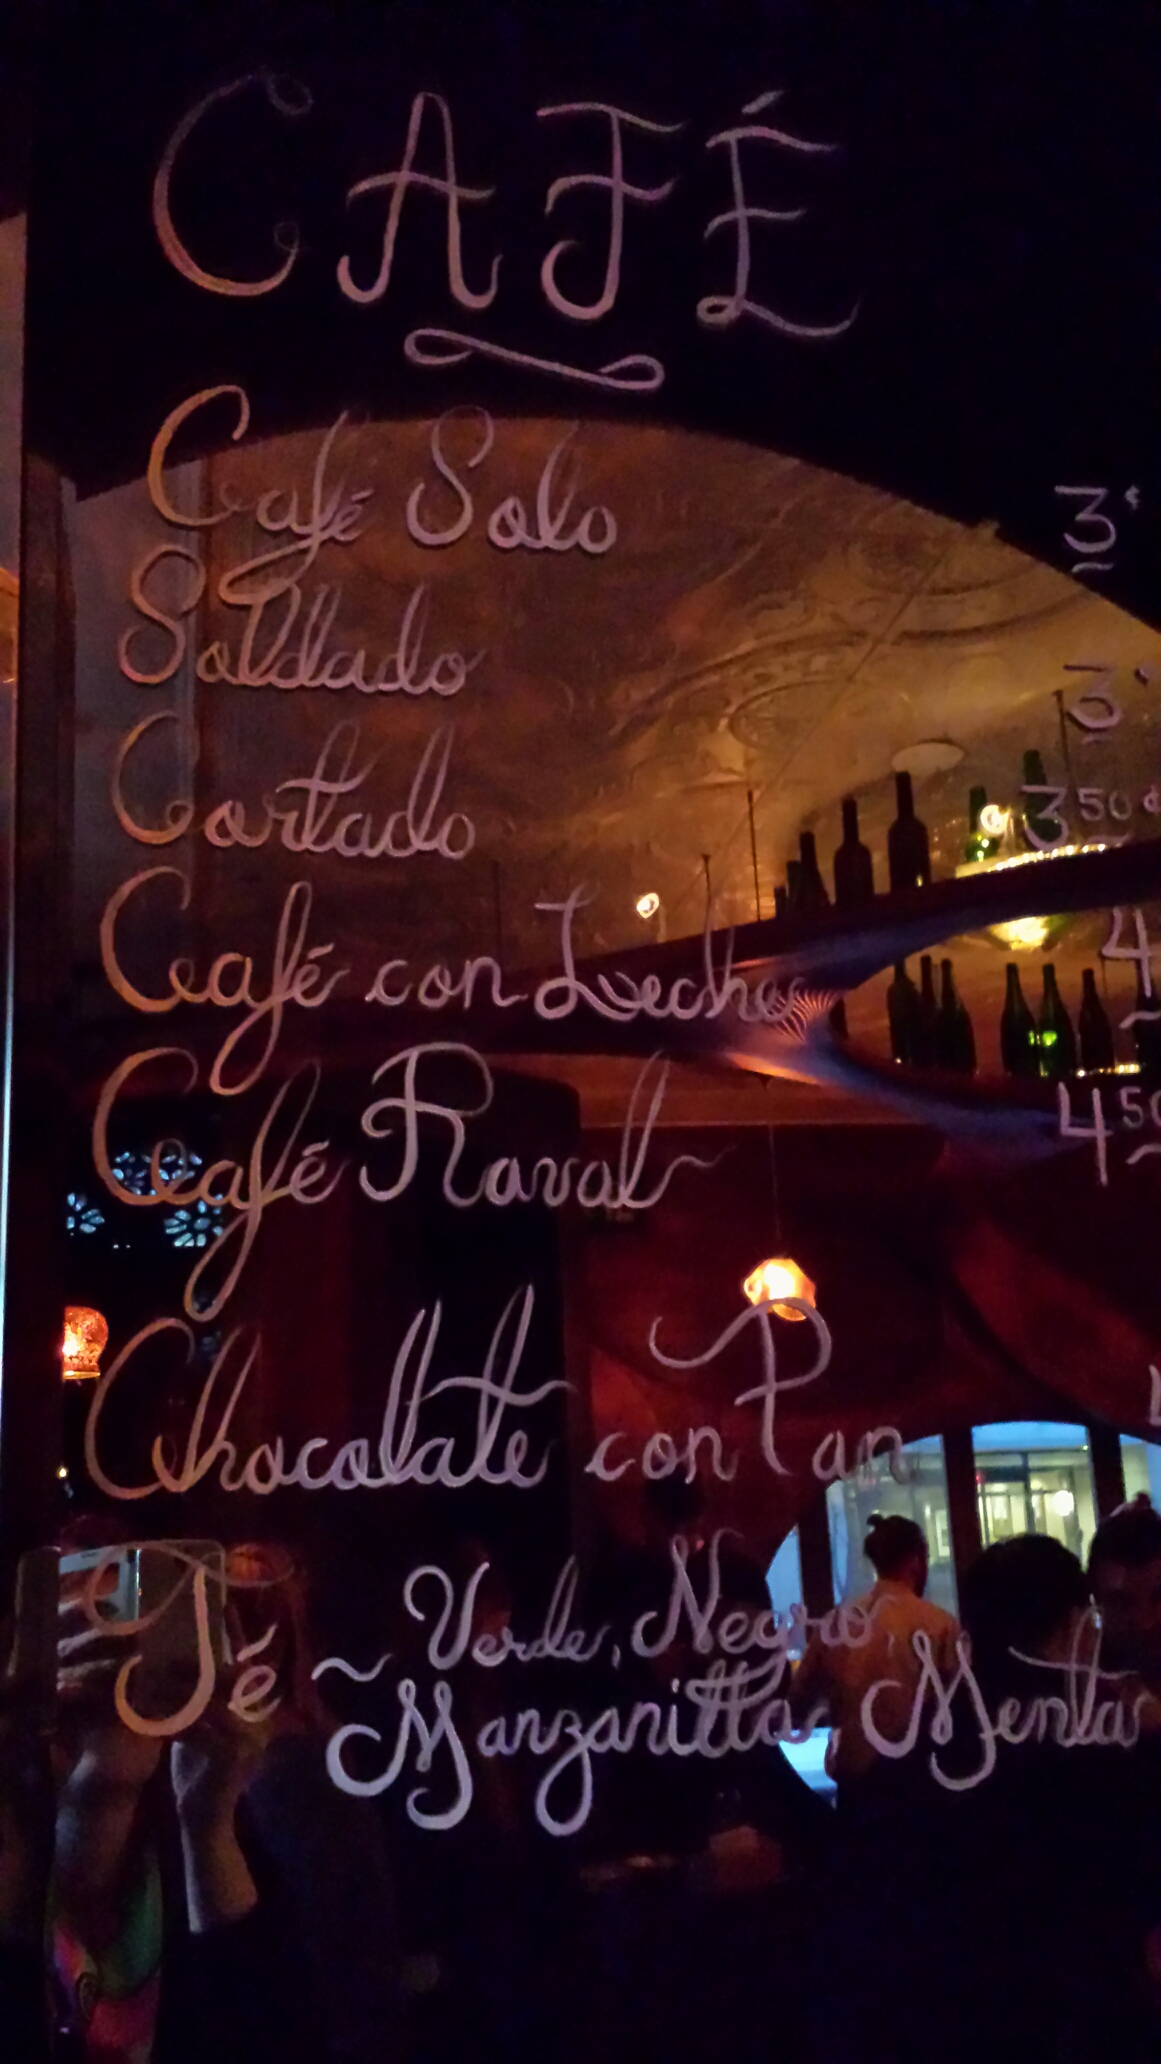 Menu of coffees written in cursive on a mirror